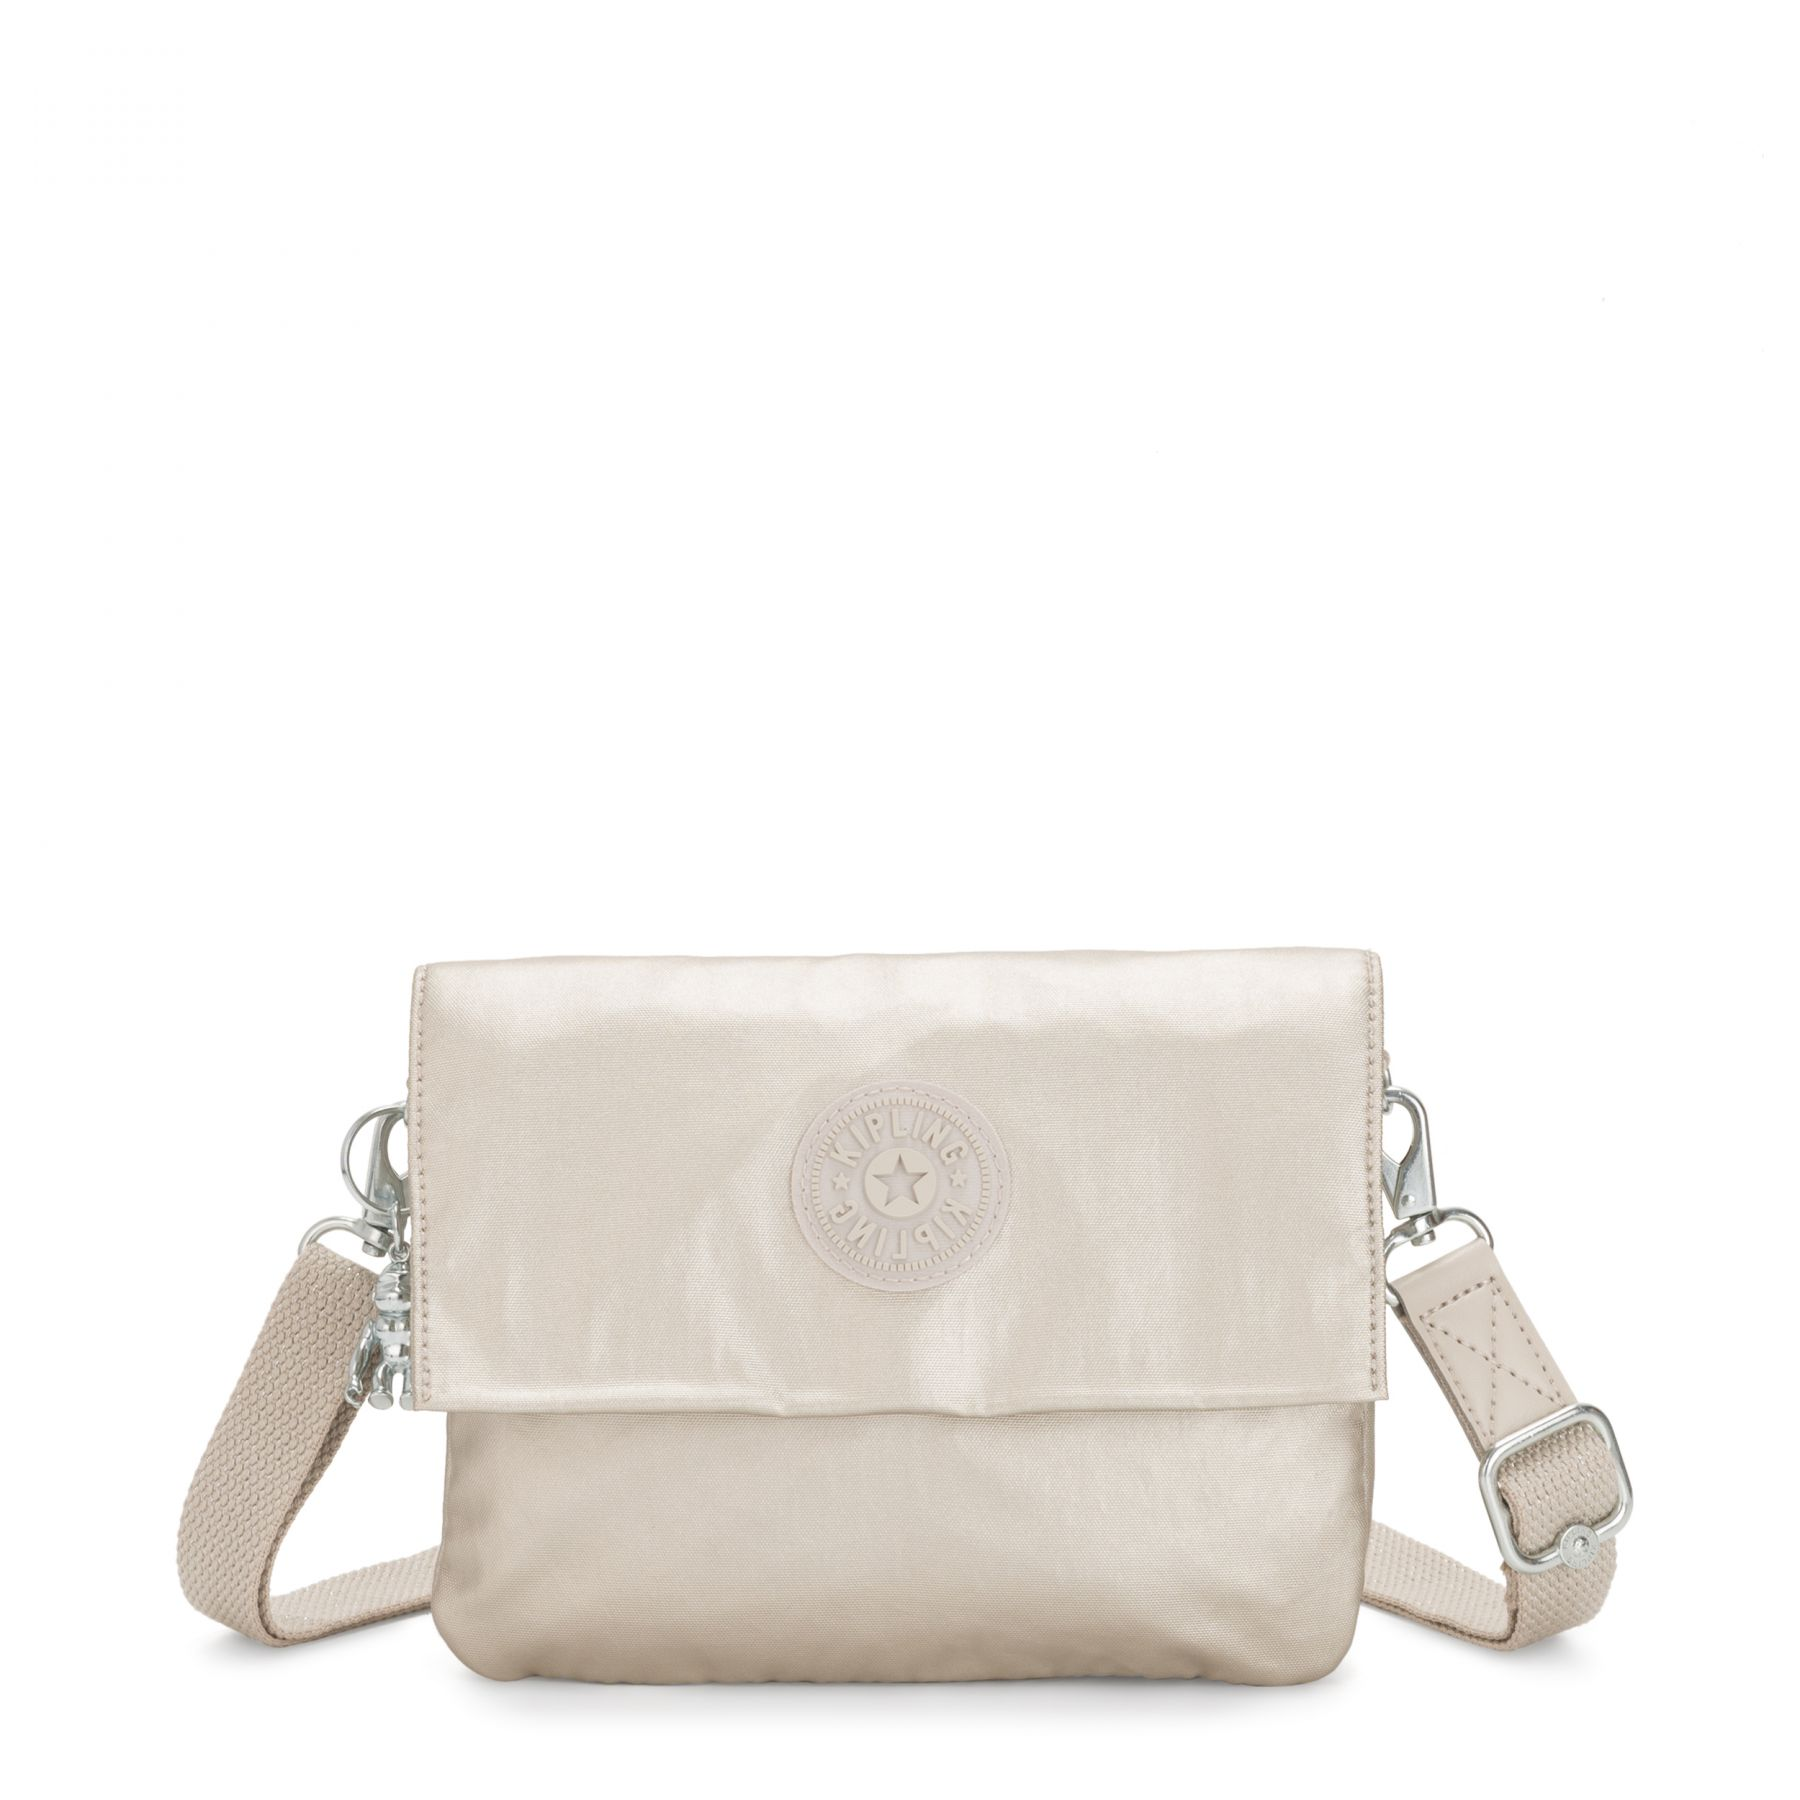 OSYKA Latest Shoulder Bags by Kipling - Front view